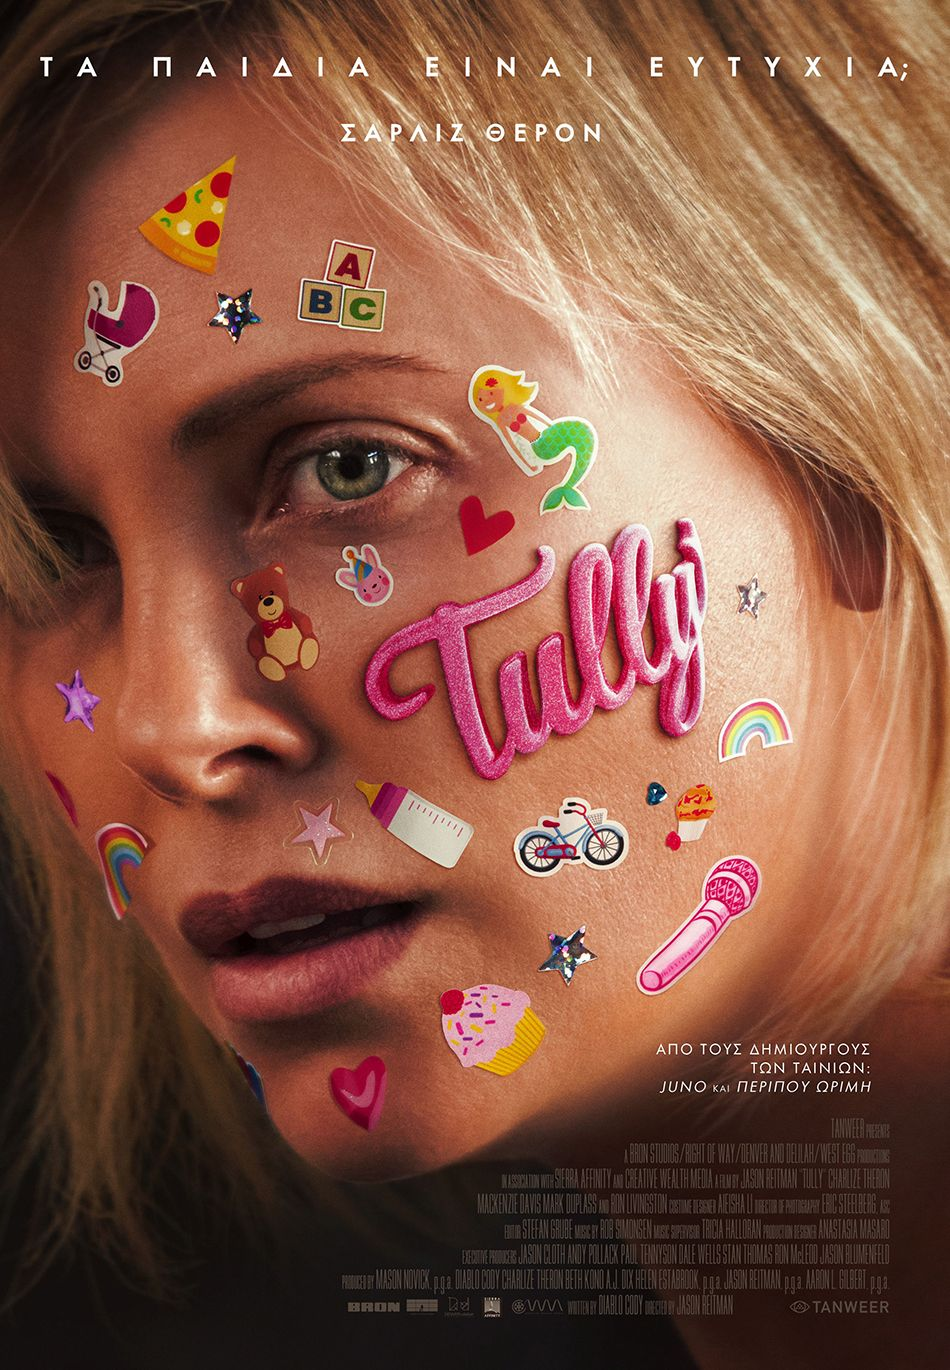 Tully: Τα παιδιά είναι ευτυχία; (Tully) Poster Πόστερ